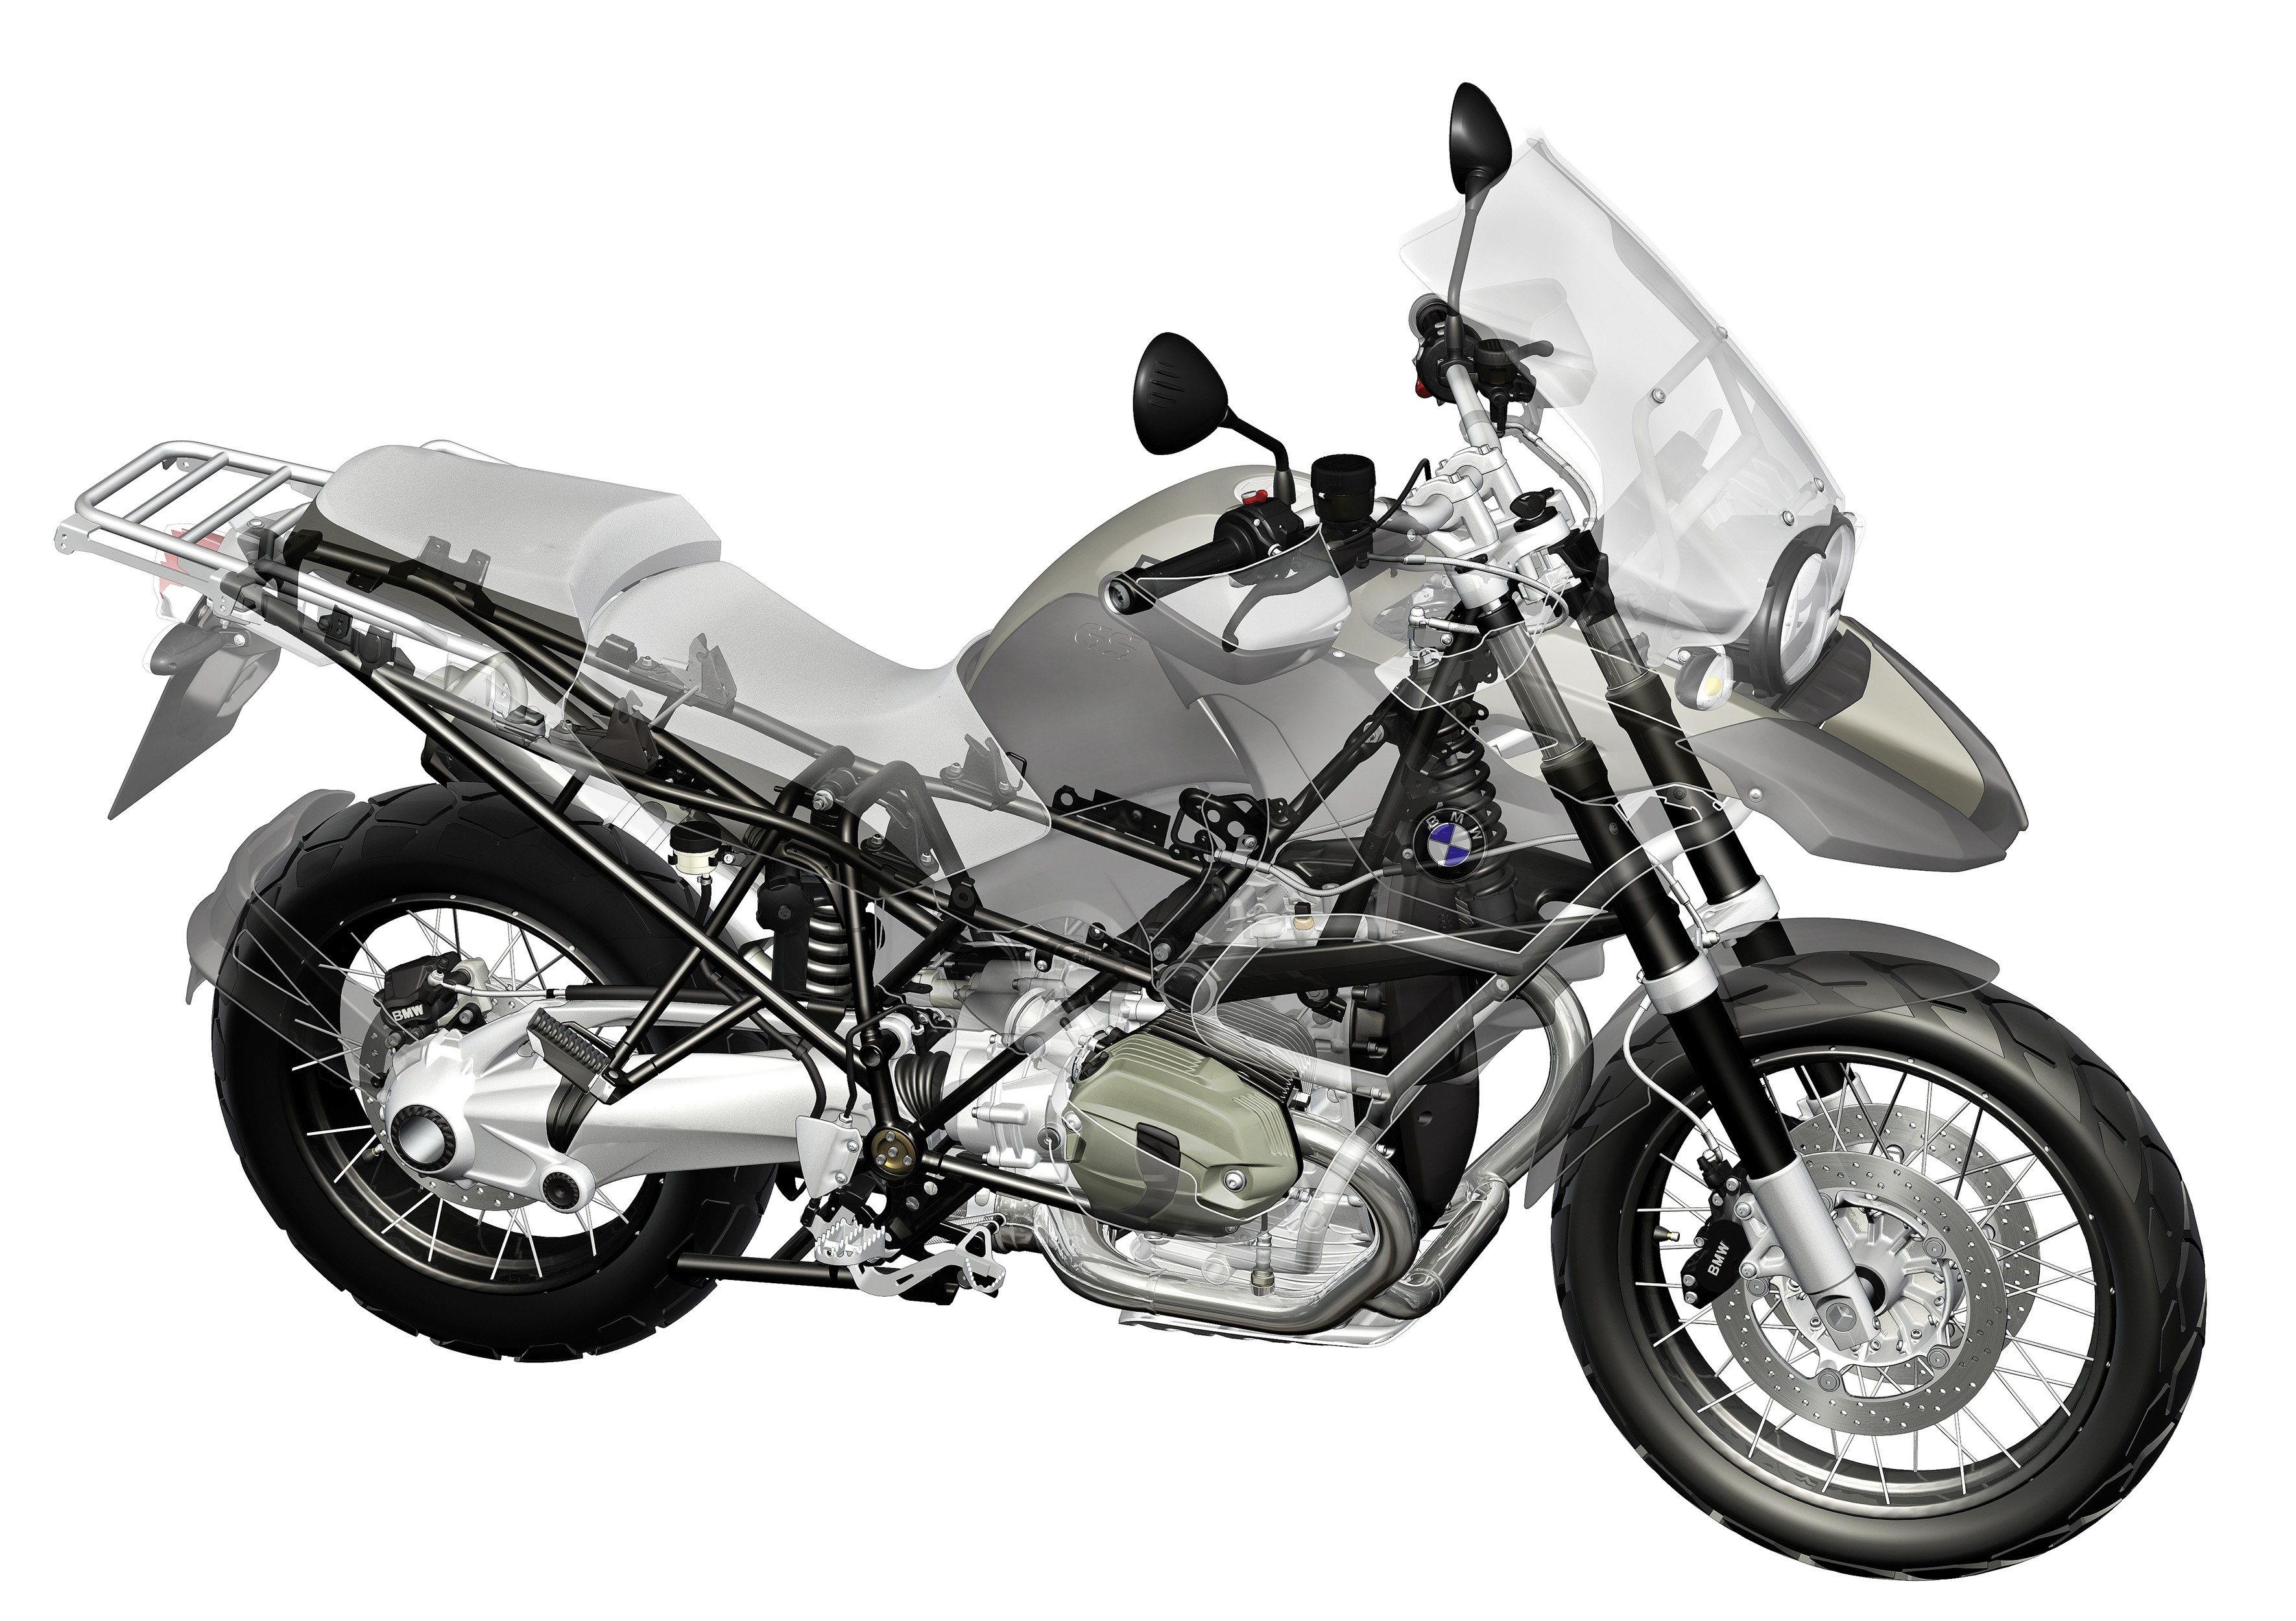 2008 BMW R 1200 GS Review - Top Speed